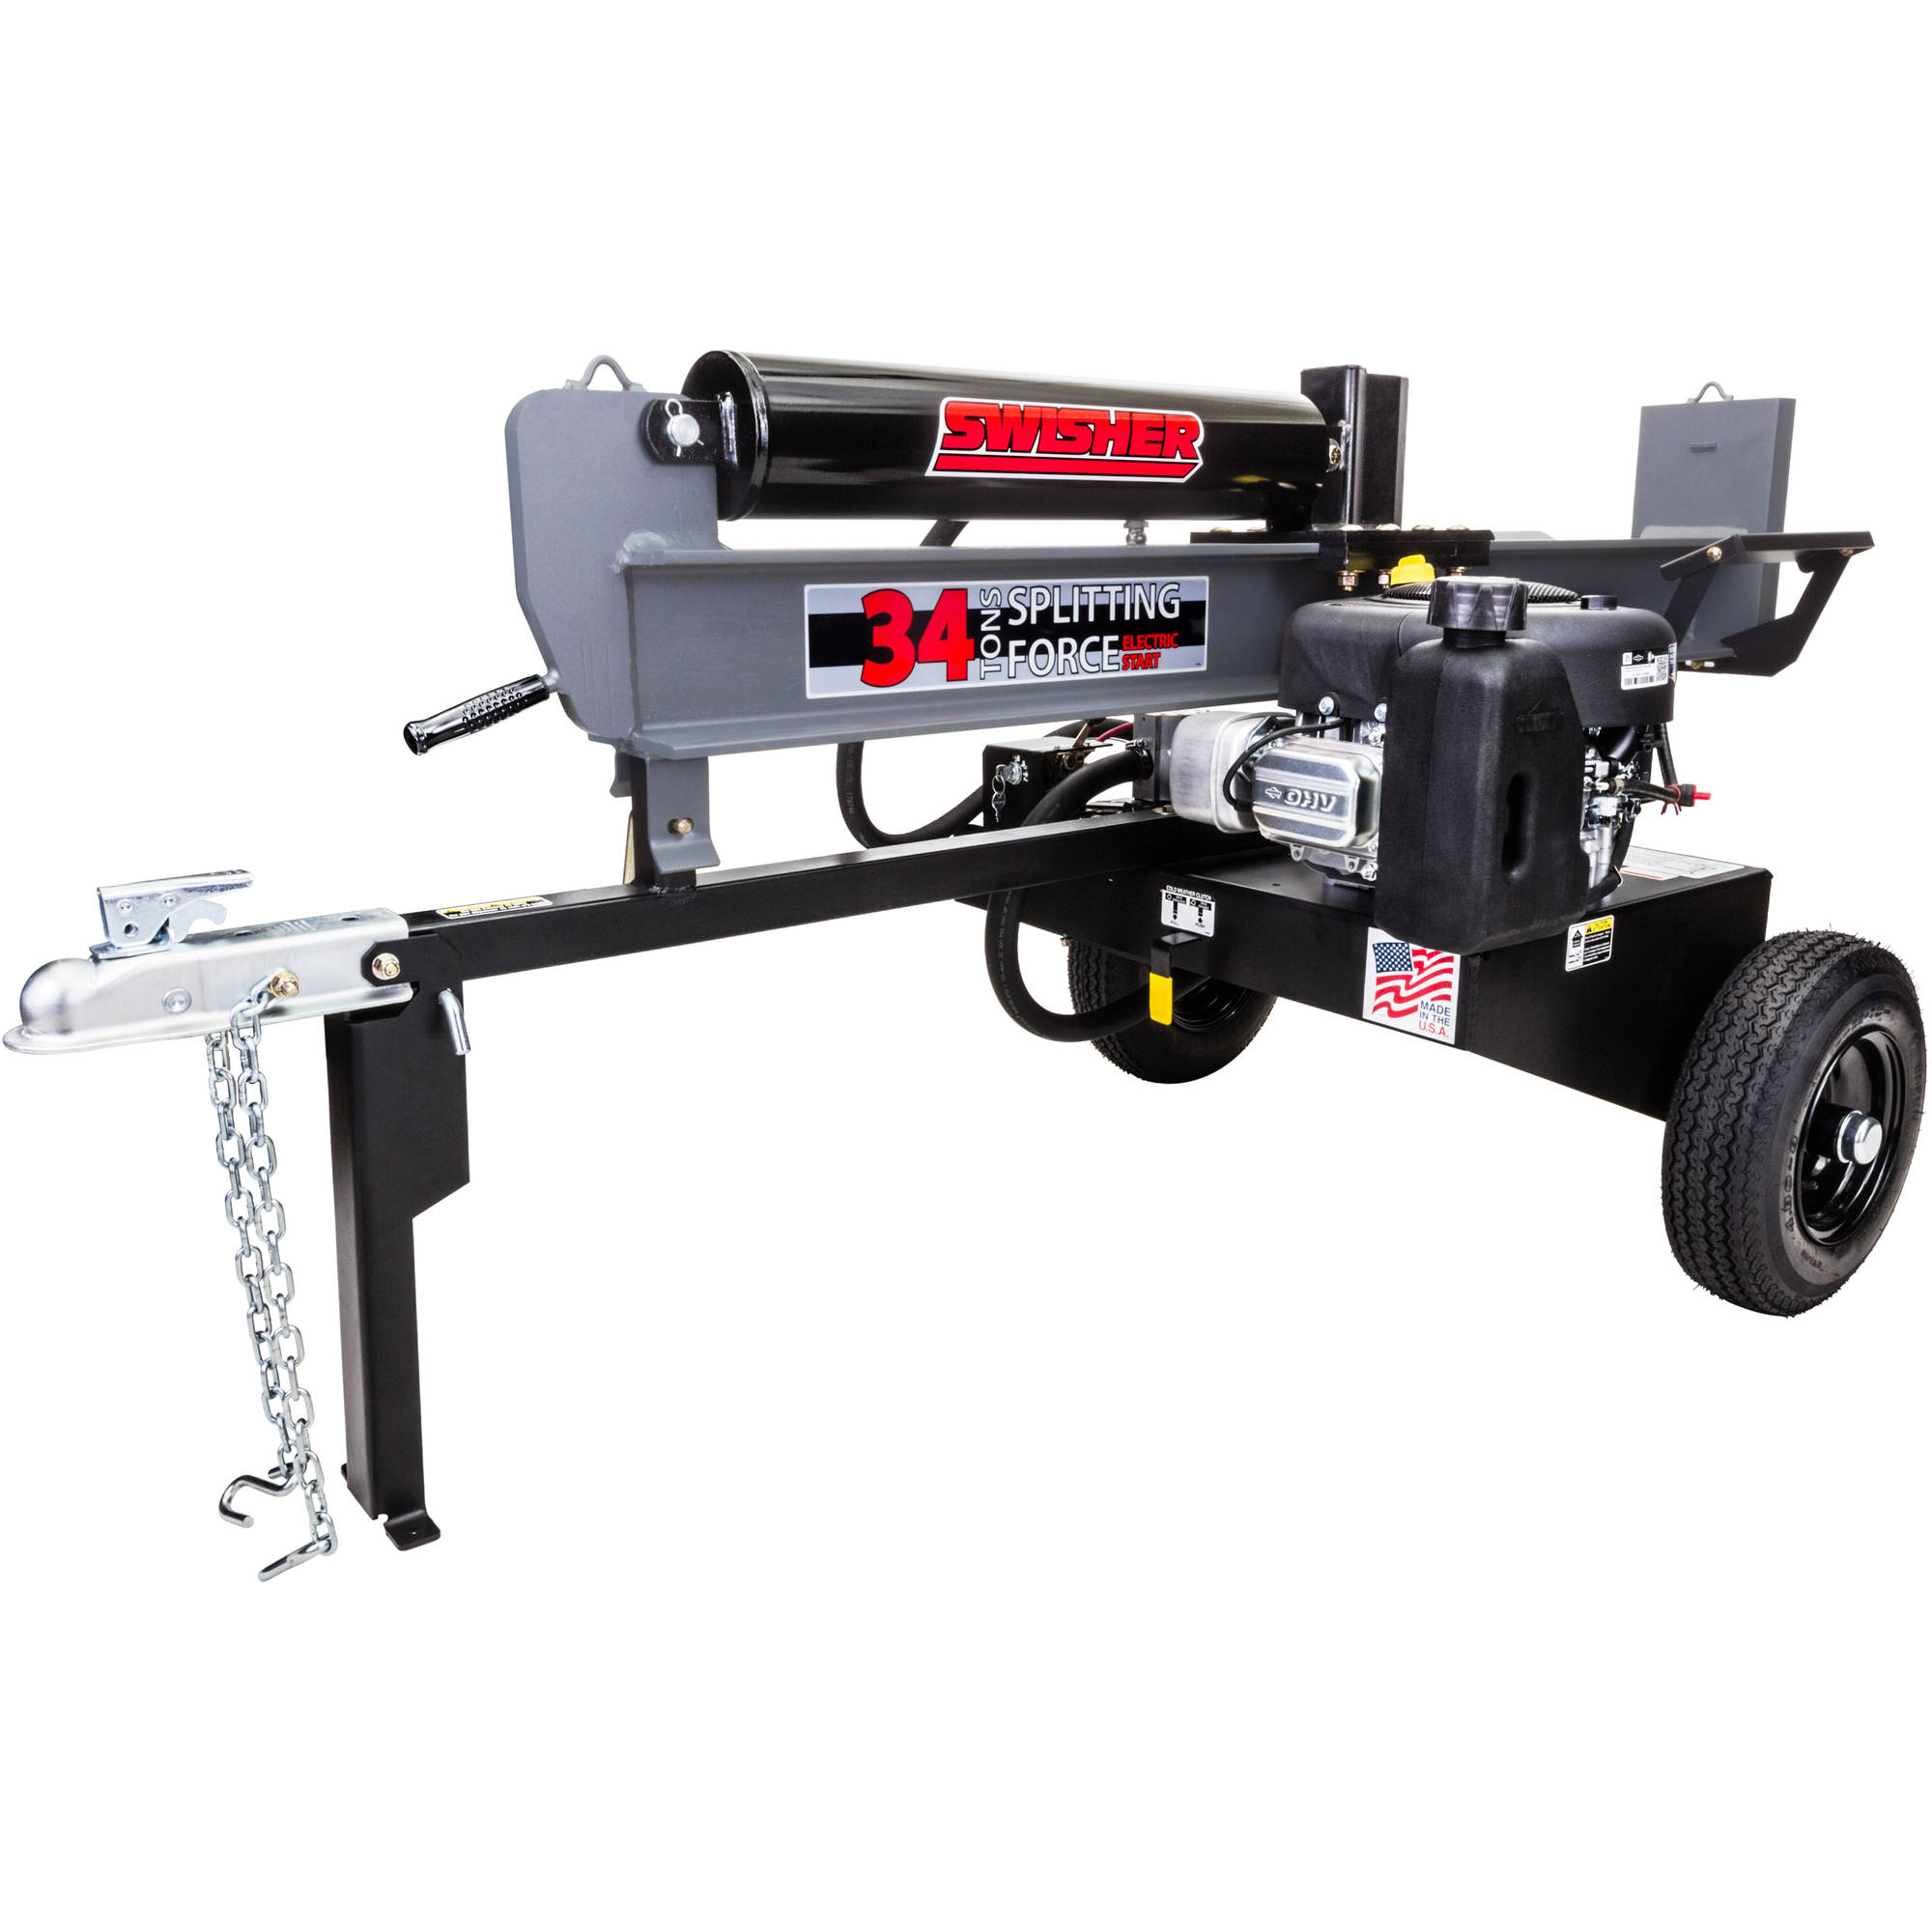 Swisher 11.5 HP 34-Ton 12V Recoil Cold-Weather Clutch Log Splitter by Swisher Acquisition, Inc